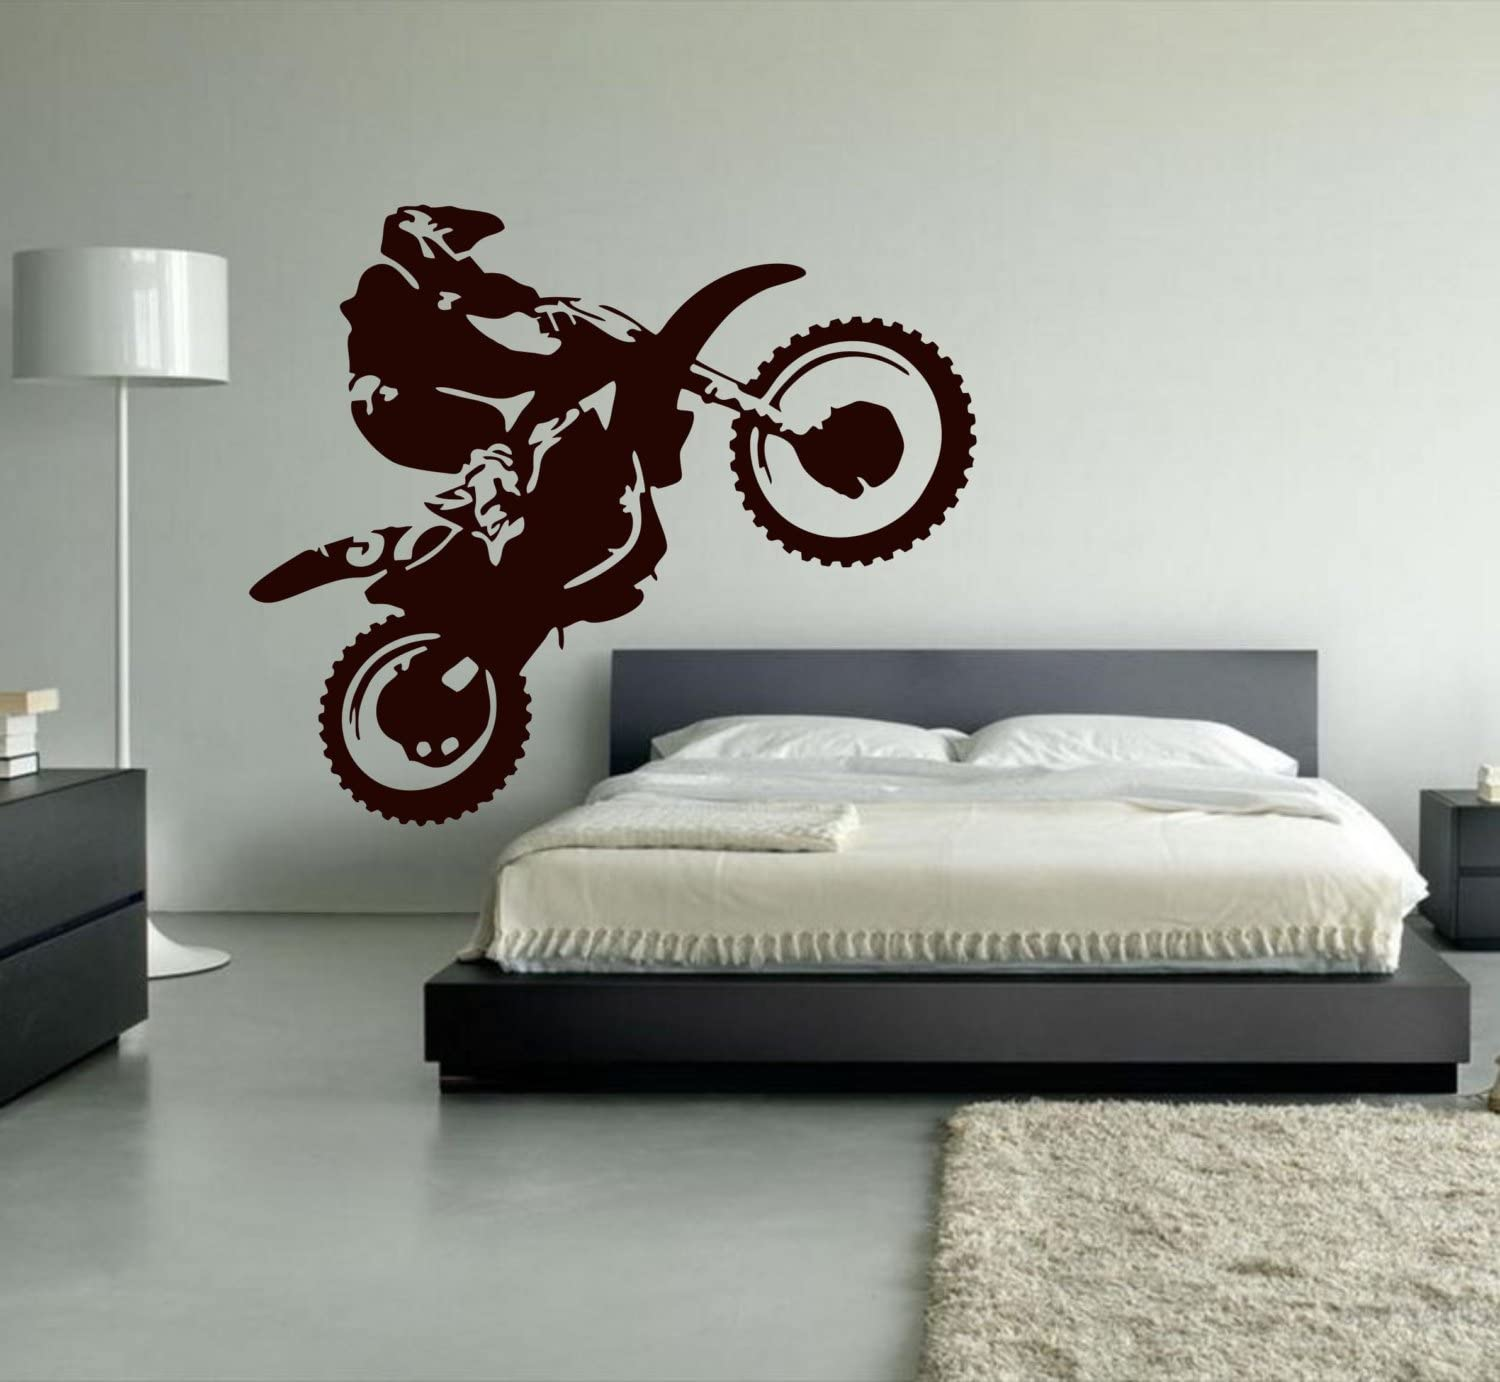 Amazon Com Ditooms Motocross Wall Decal Dirt Bike Vinyl Wall Decor Motorcycle Sports Wall Stickers Home Kitchen